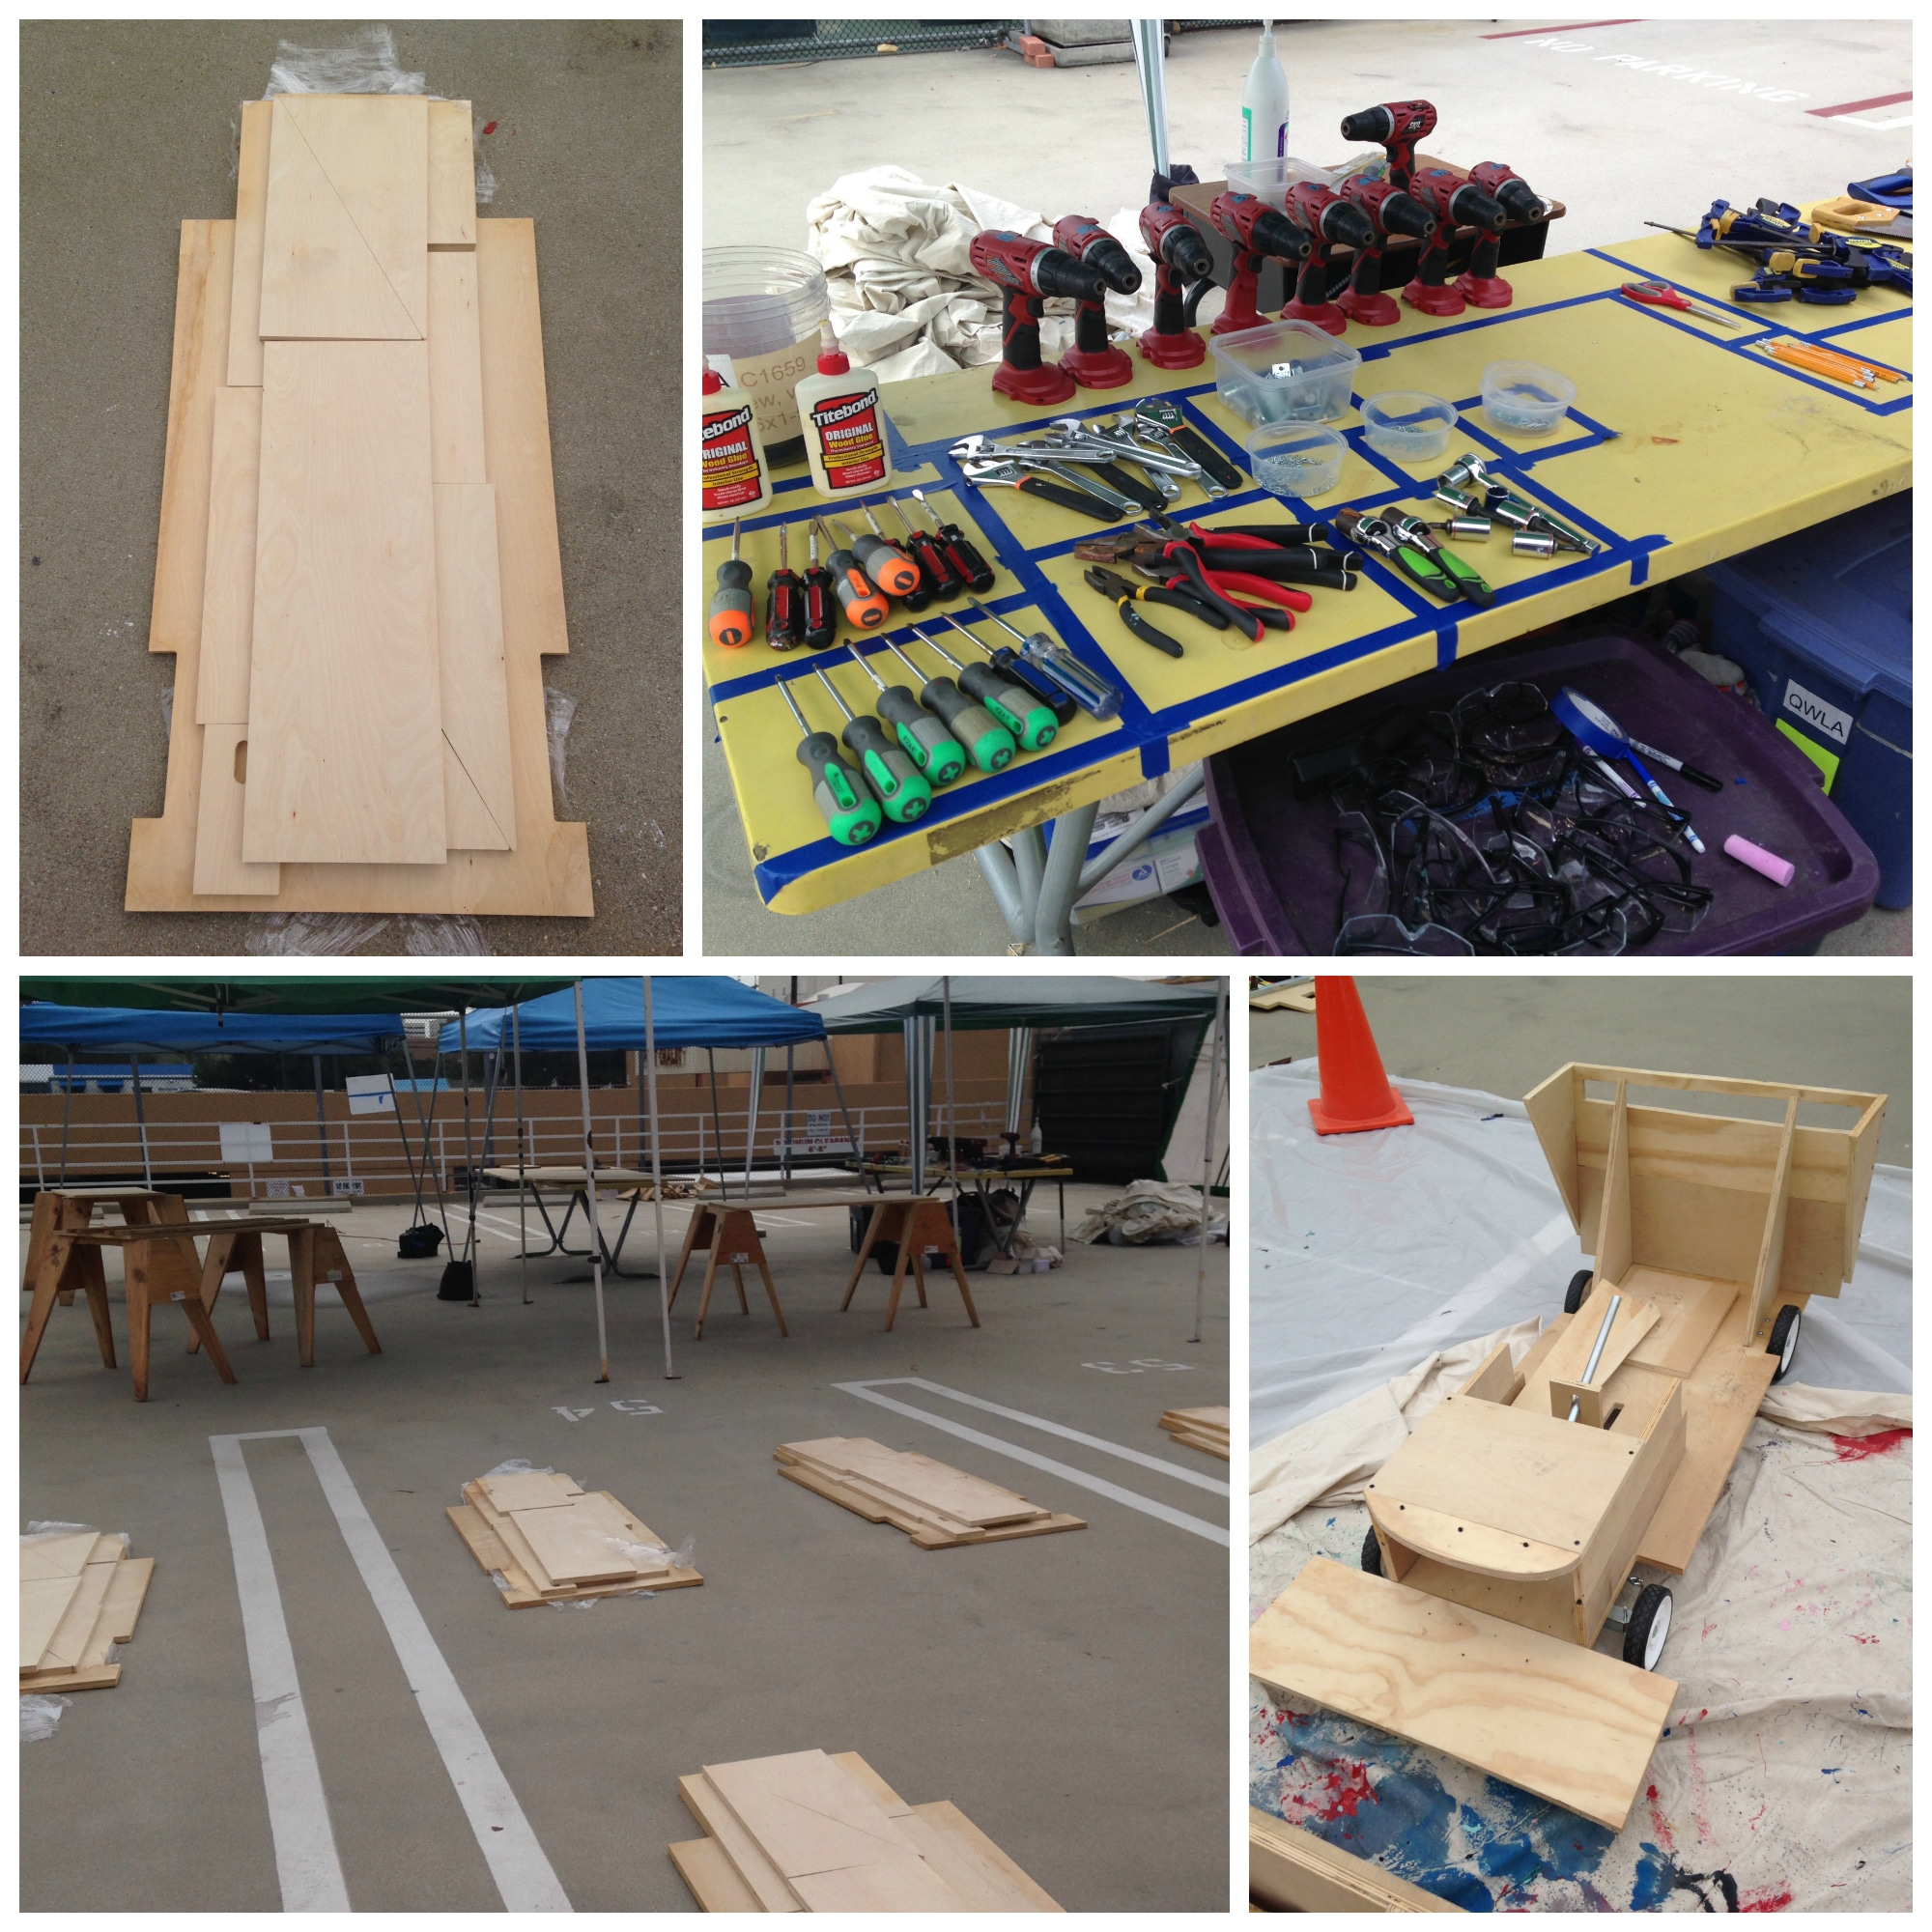 go kart component parts at Galileo Summer Camp